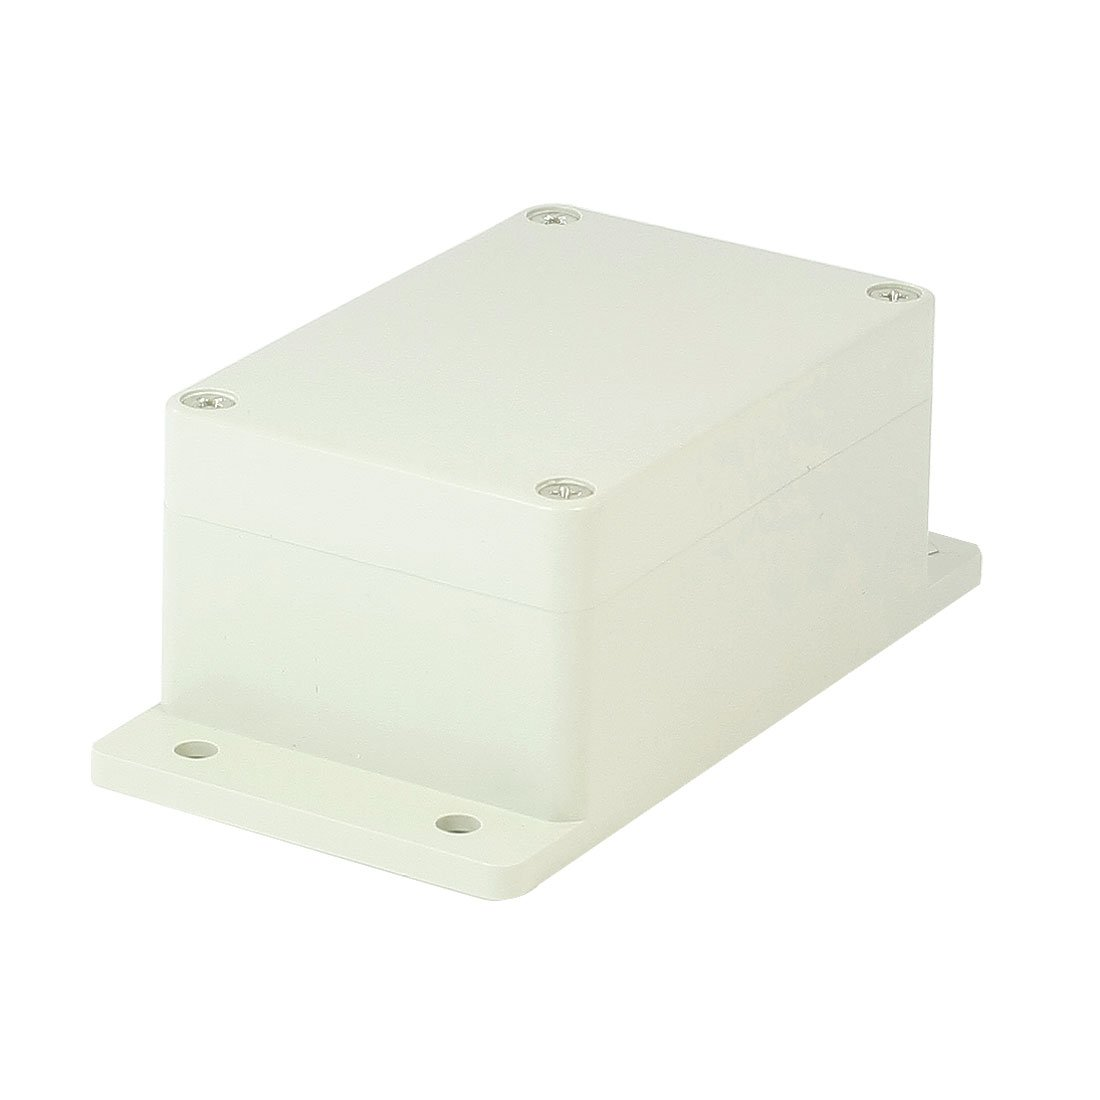 IMC Hot Waterproof Plastic Enclosure Case DIY Junction Box 30393 automotive computer board